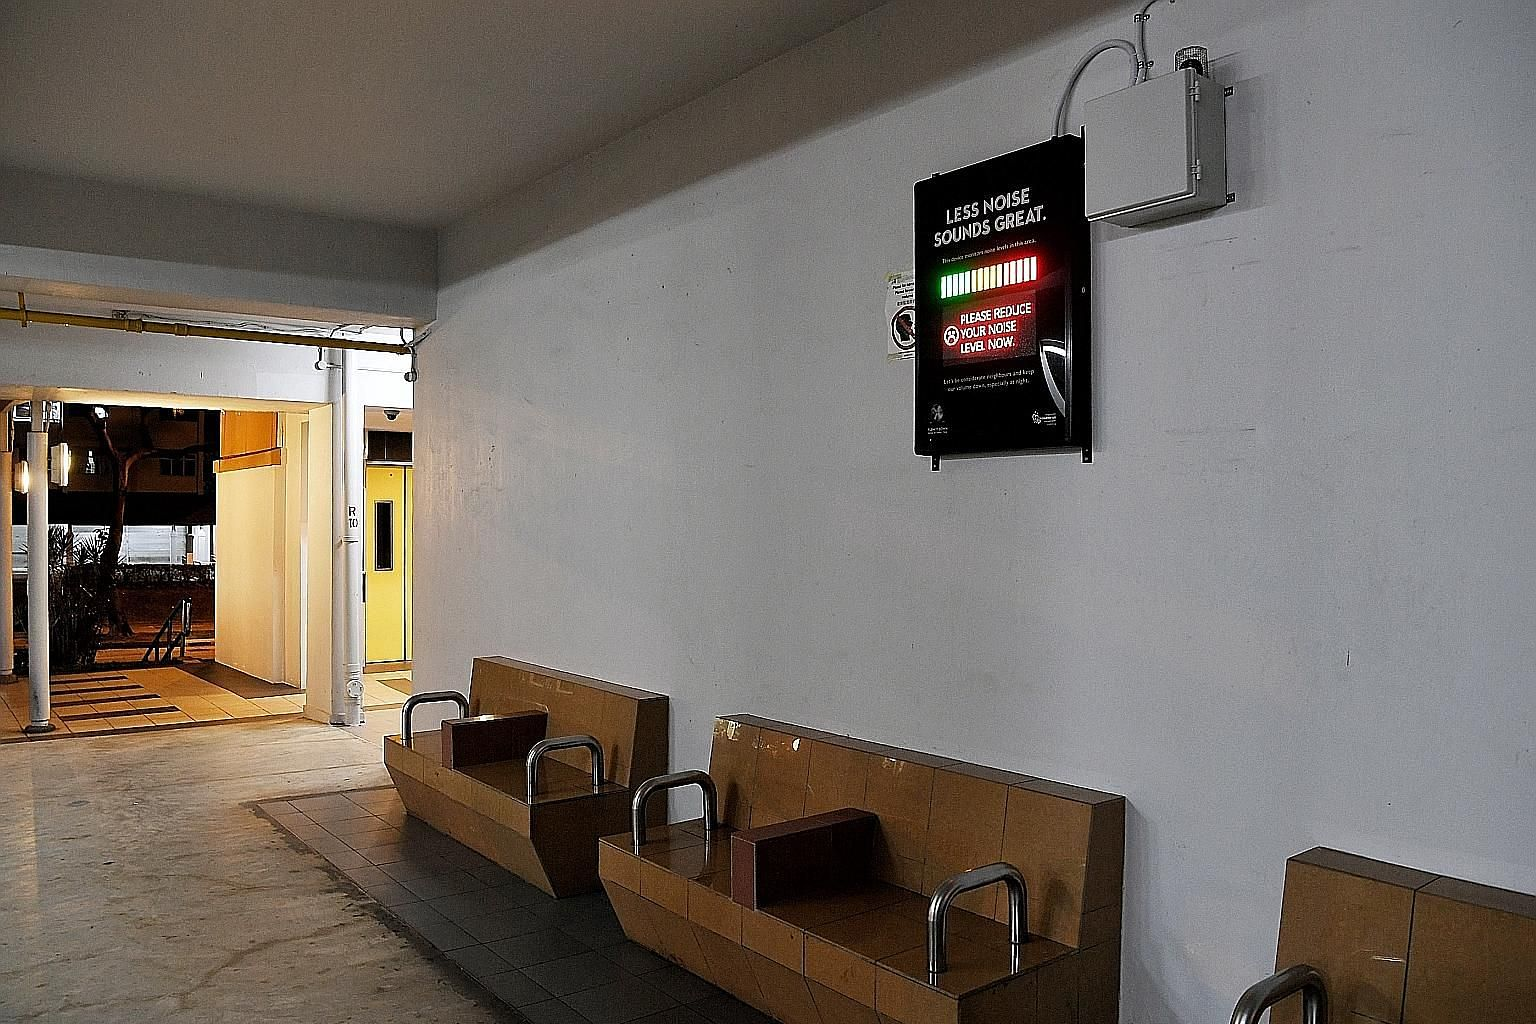 A monitor to track noise levels installed at a void deck in Ang Mo Kio by the Municipal Services Office and Singapore Kindness Movement as part of a pilot project to deter noise pollution in community spaces. ST PHOTO: KHALID BABA